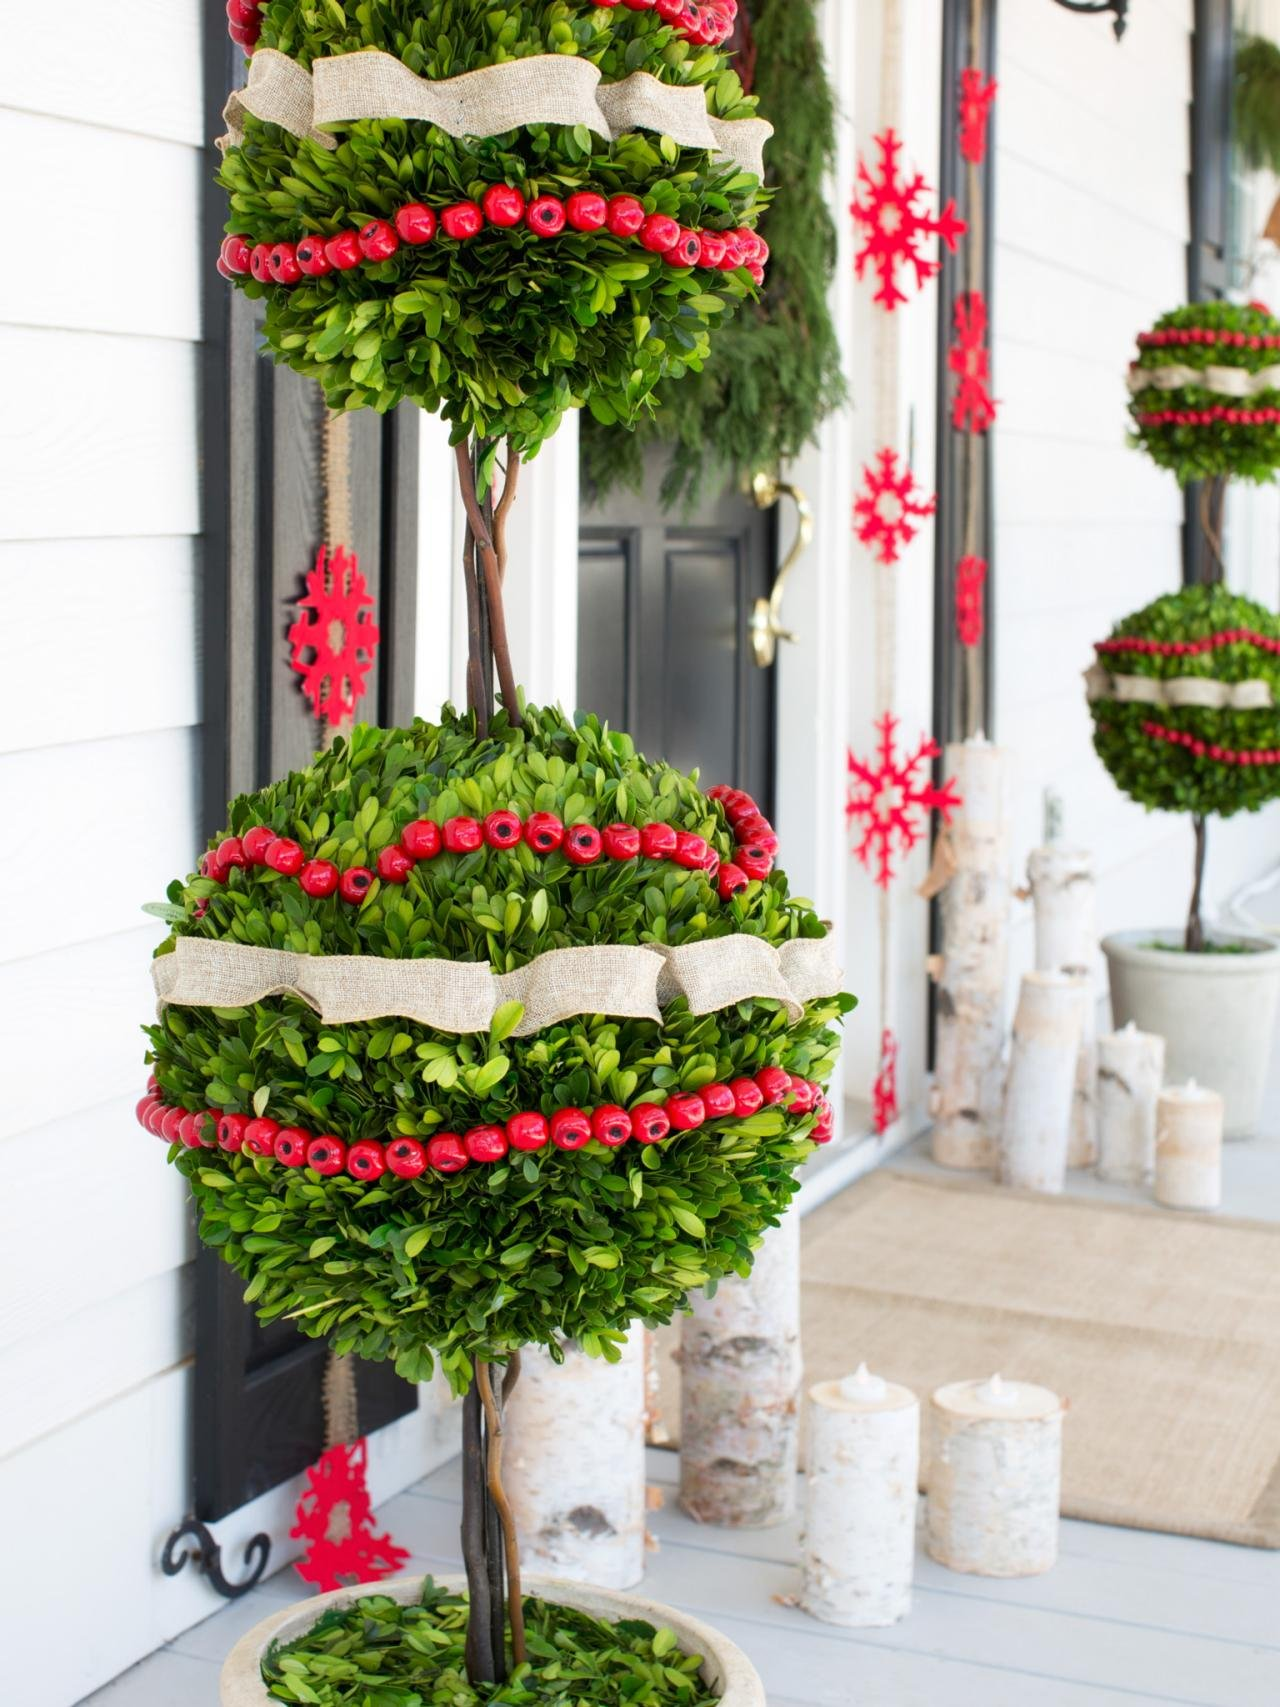 Outdoor Wall Christmas Decorations 30 Best Outdoor Christmas Decorations Ideas